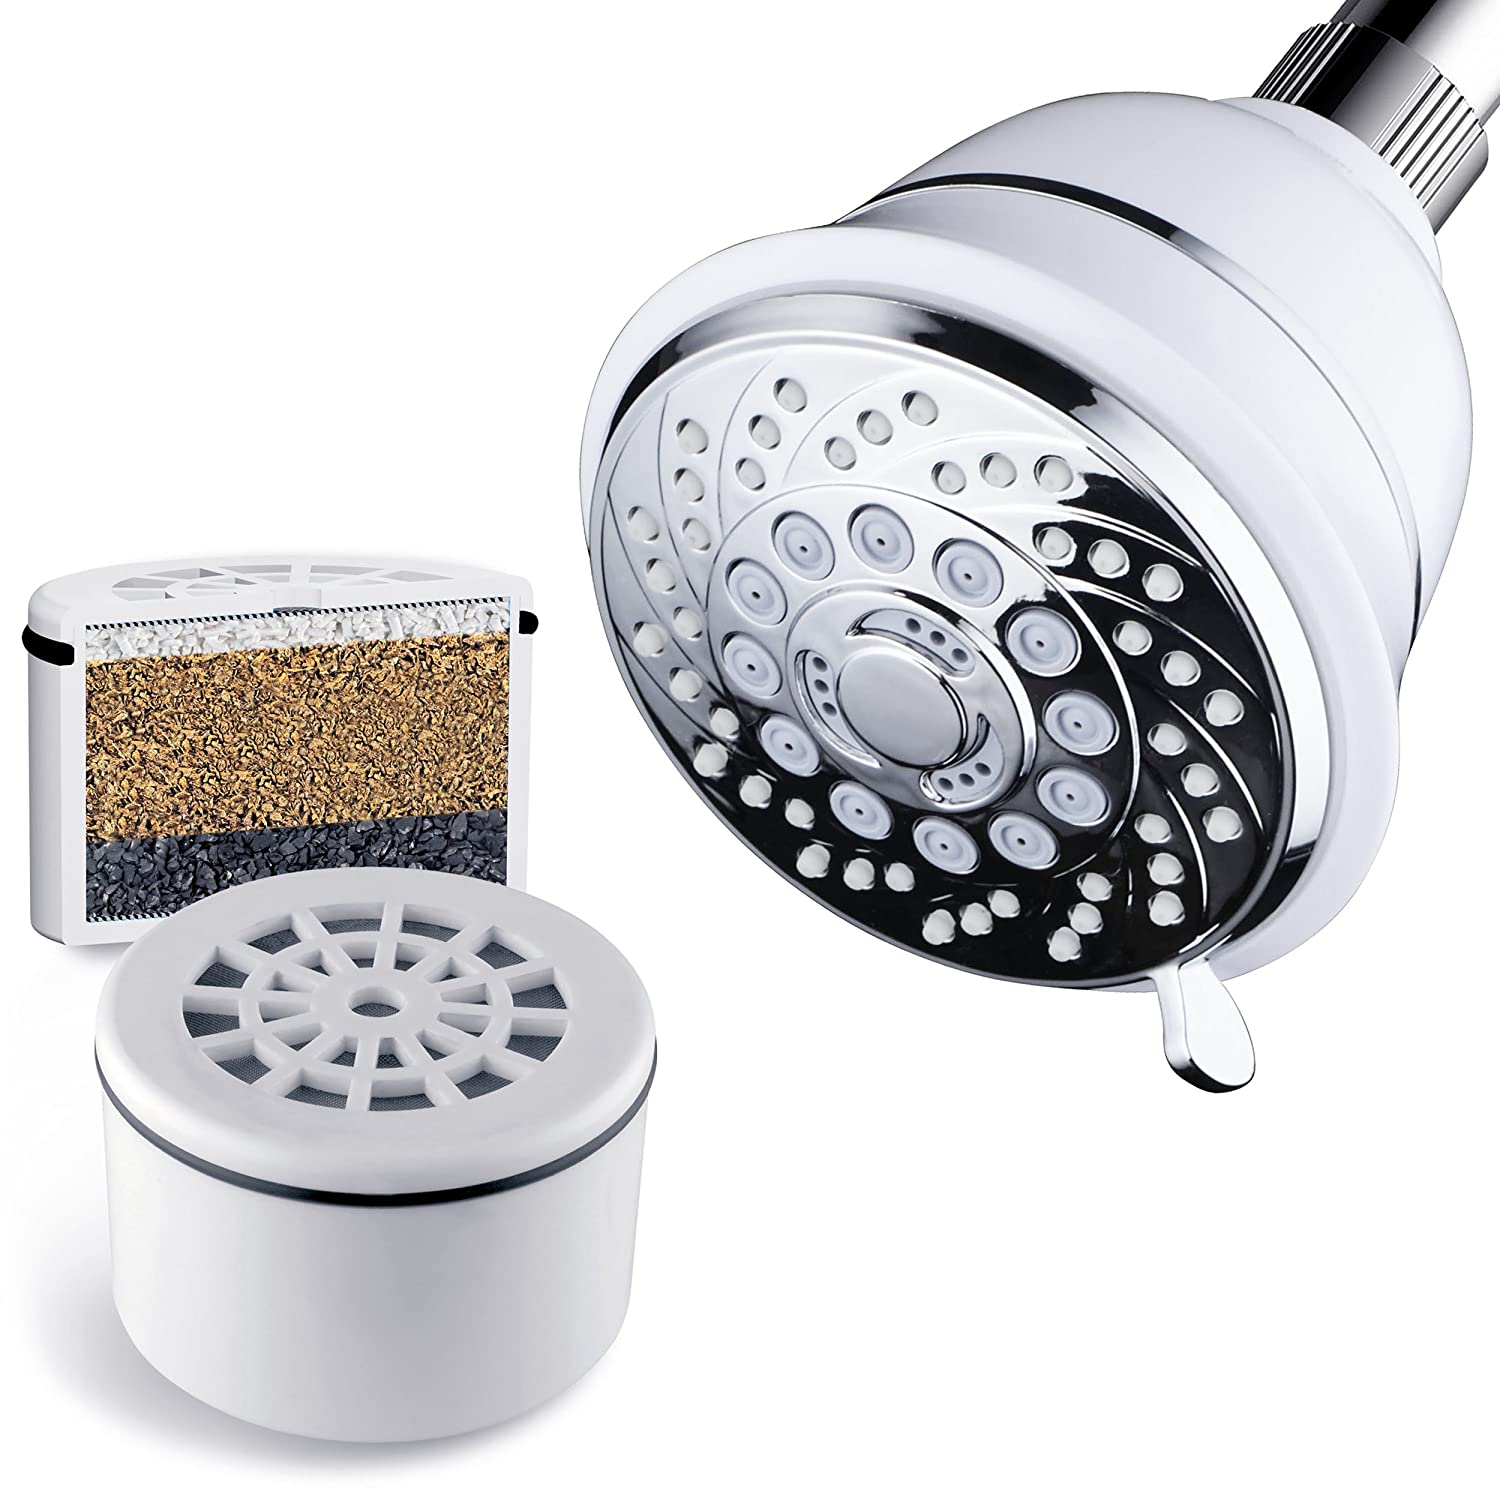 AquaCare By Hotel Spa Filtered Shower Head 4 Inch Chrome Face 6 Setting Showerhead with 3 Stage Shower Filter Cartridge Inside. (Dual White/Chrome Finish)